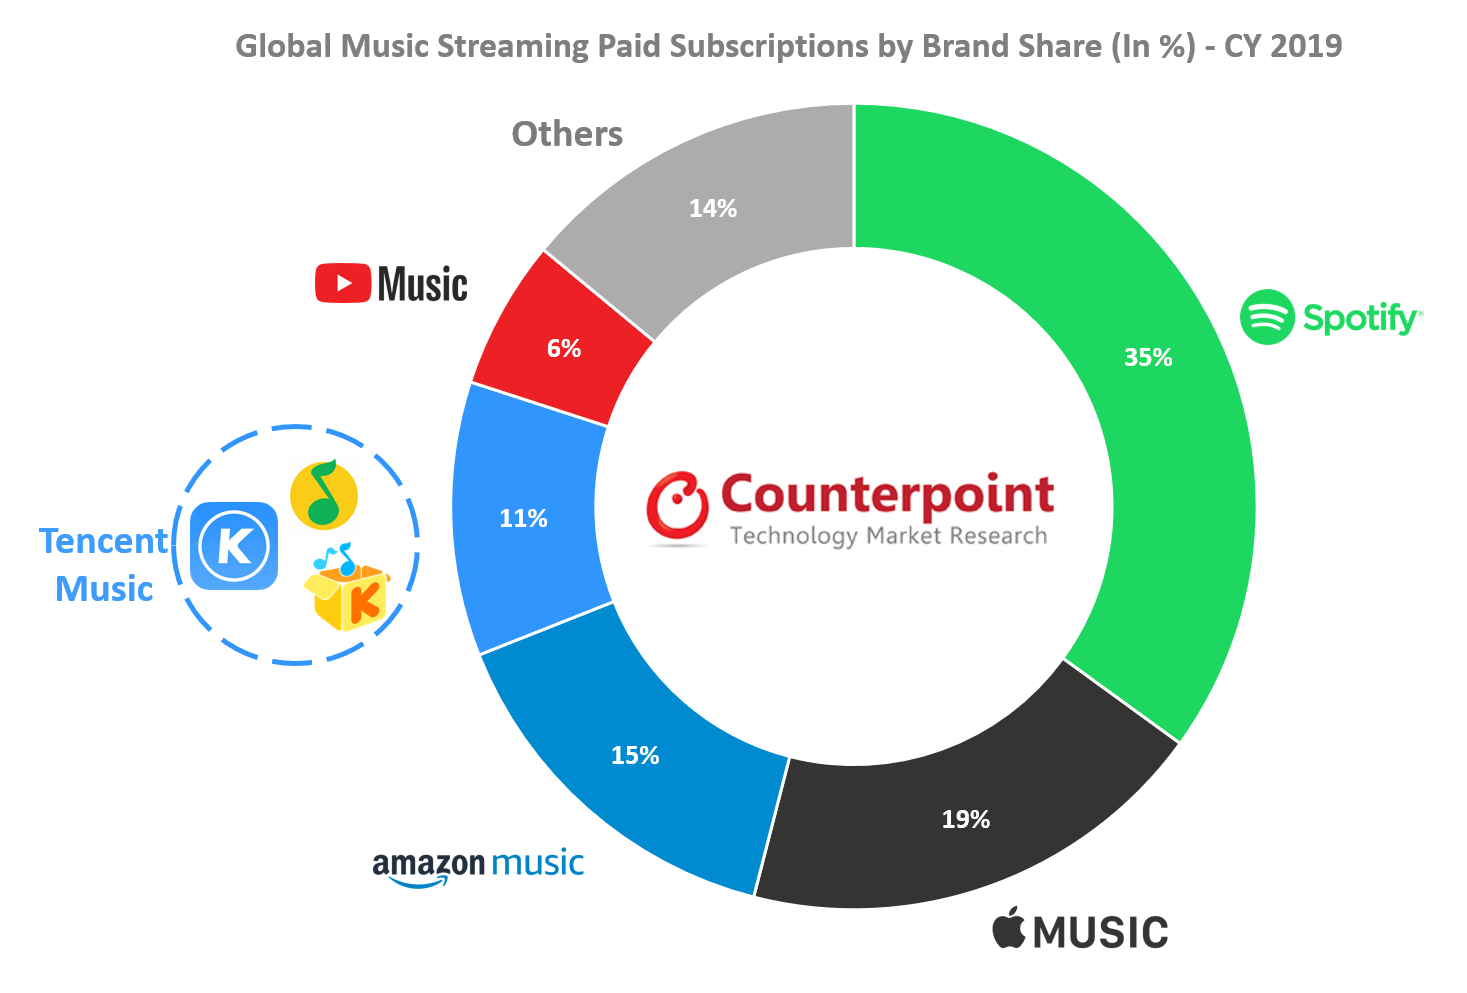 Counterpoint: Global Music Streaming Paid Subscriptions by Brand Share